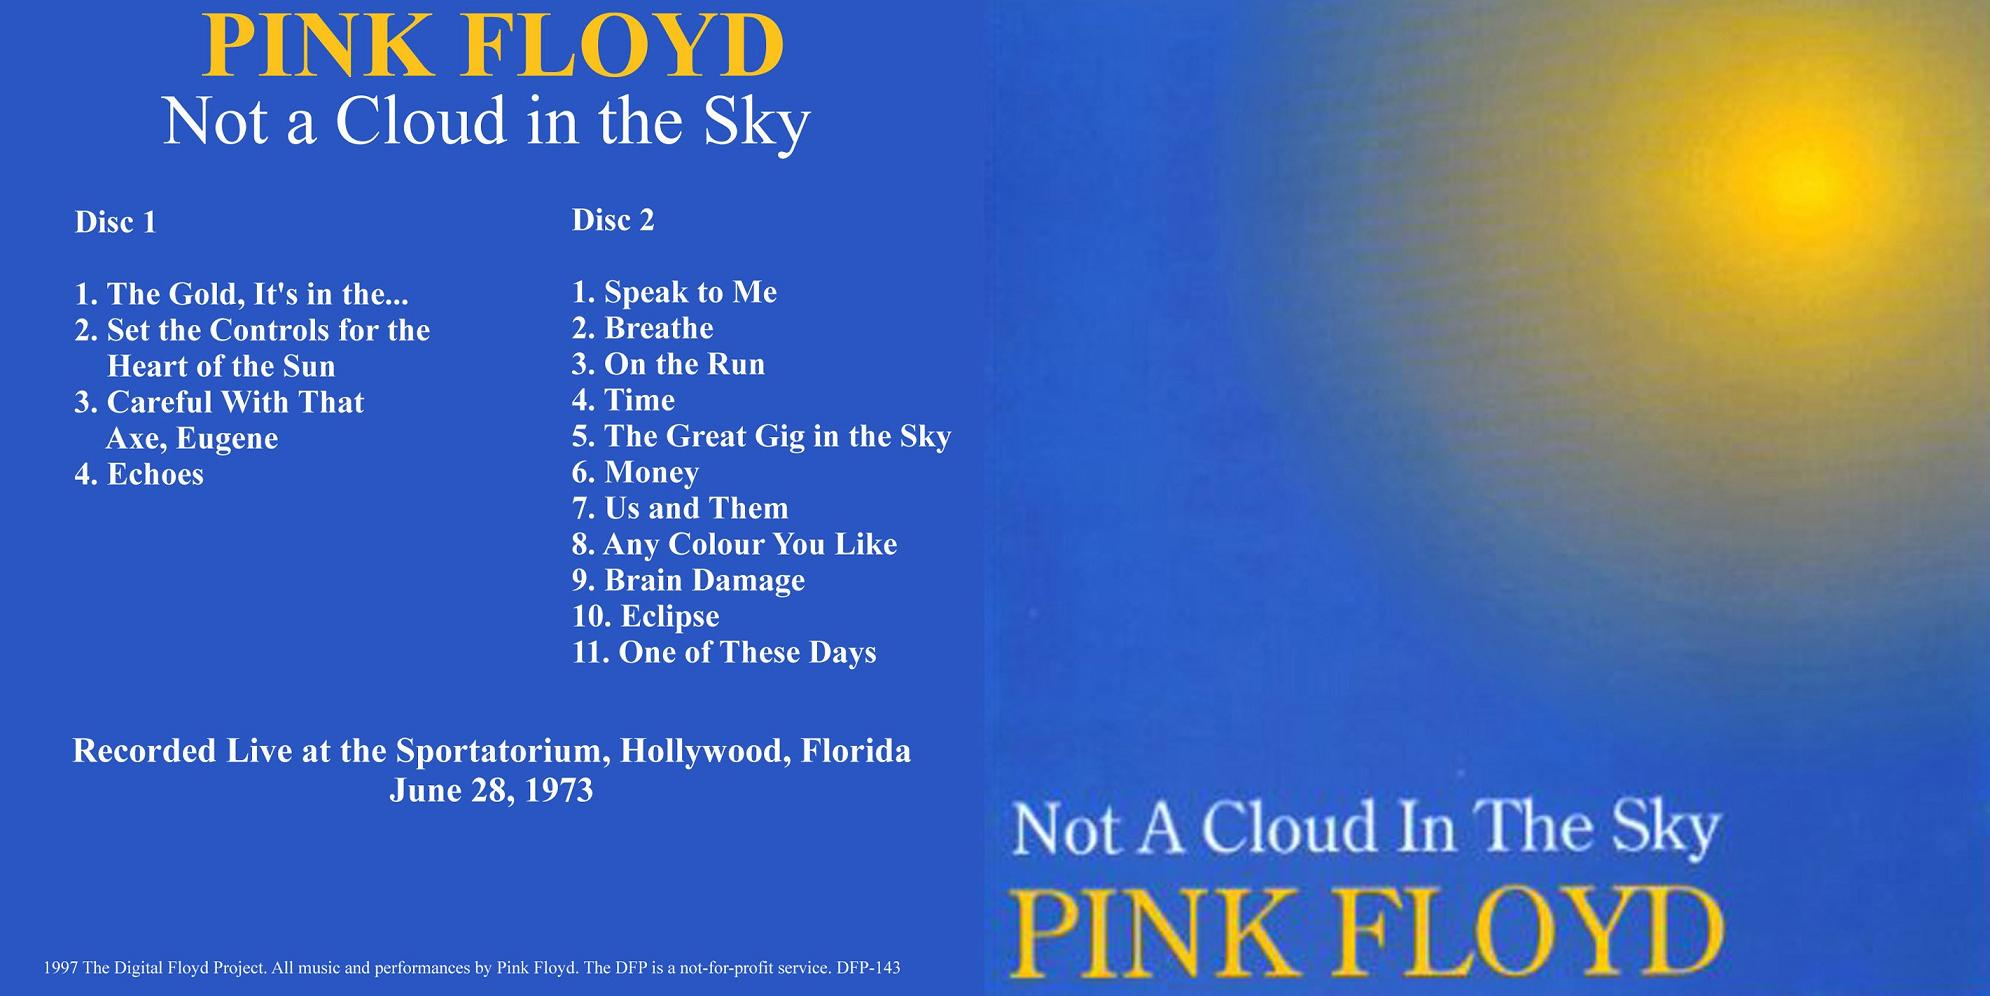 1973-06-28-Not_a_cloud_in_the_sky-front